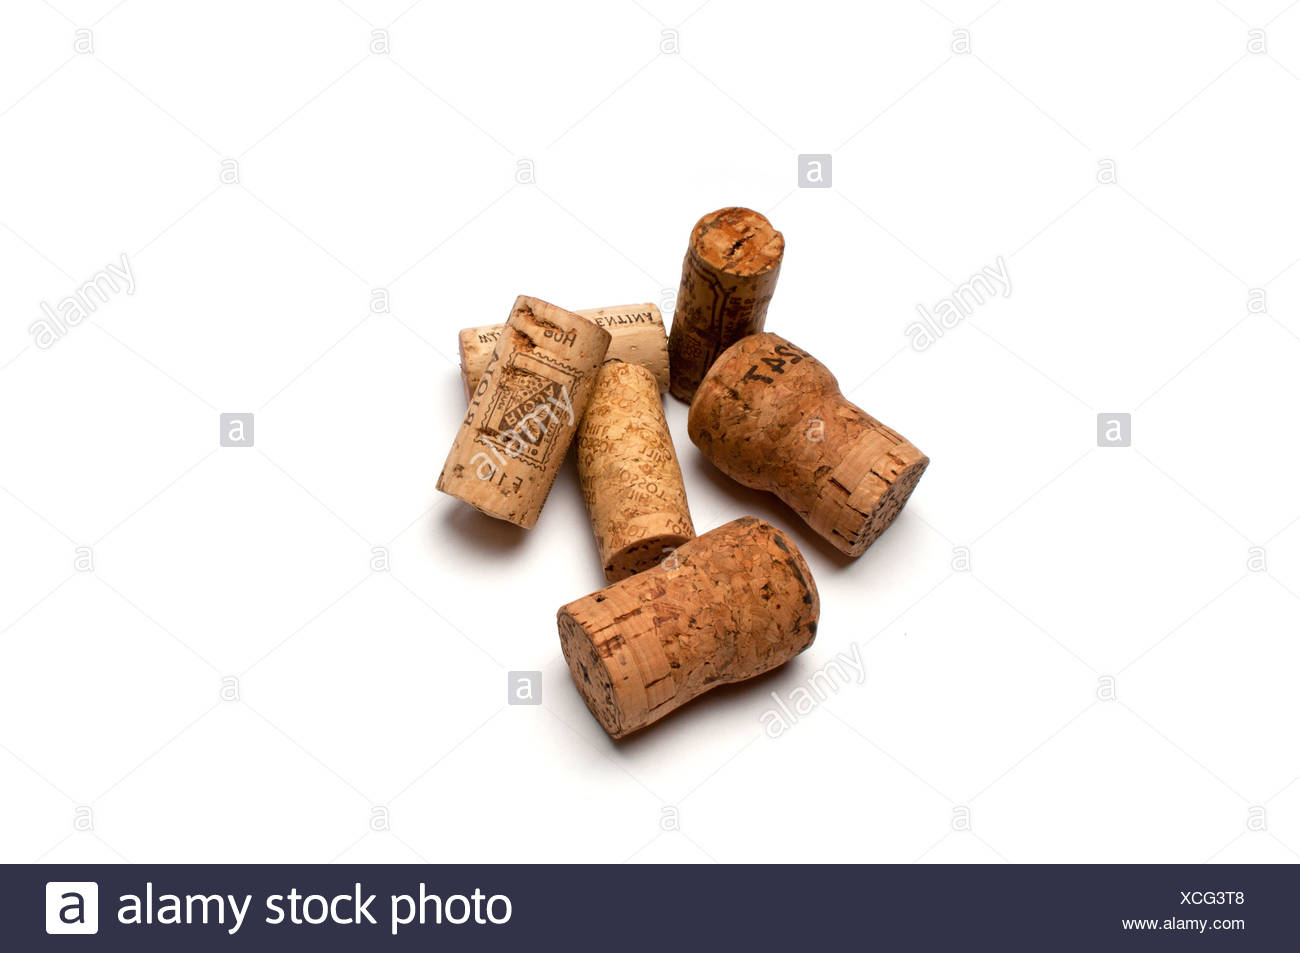 Wine and champagne corks - Stock Image